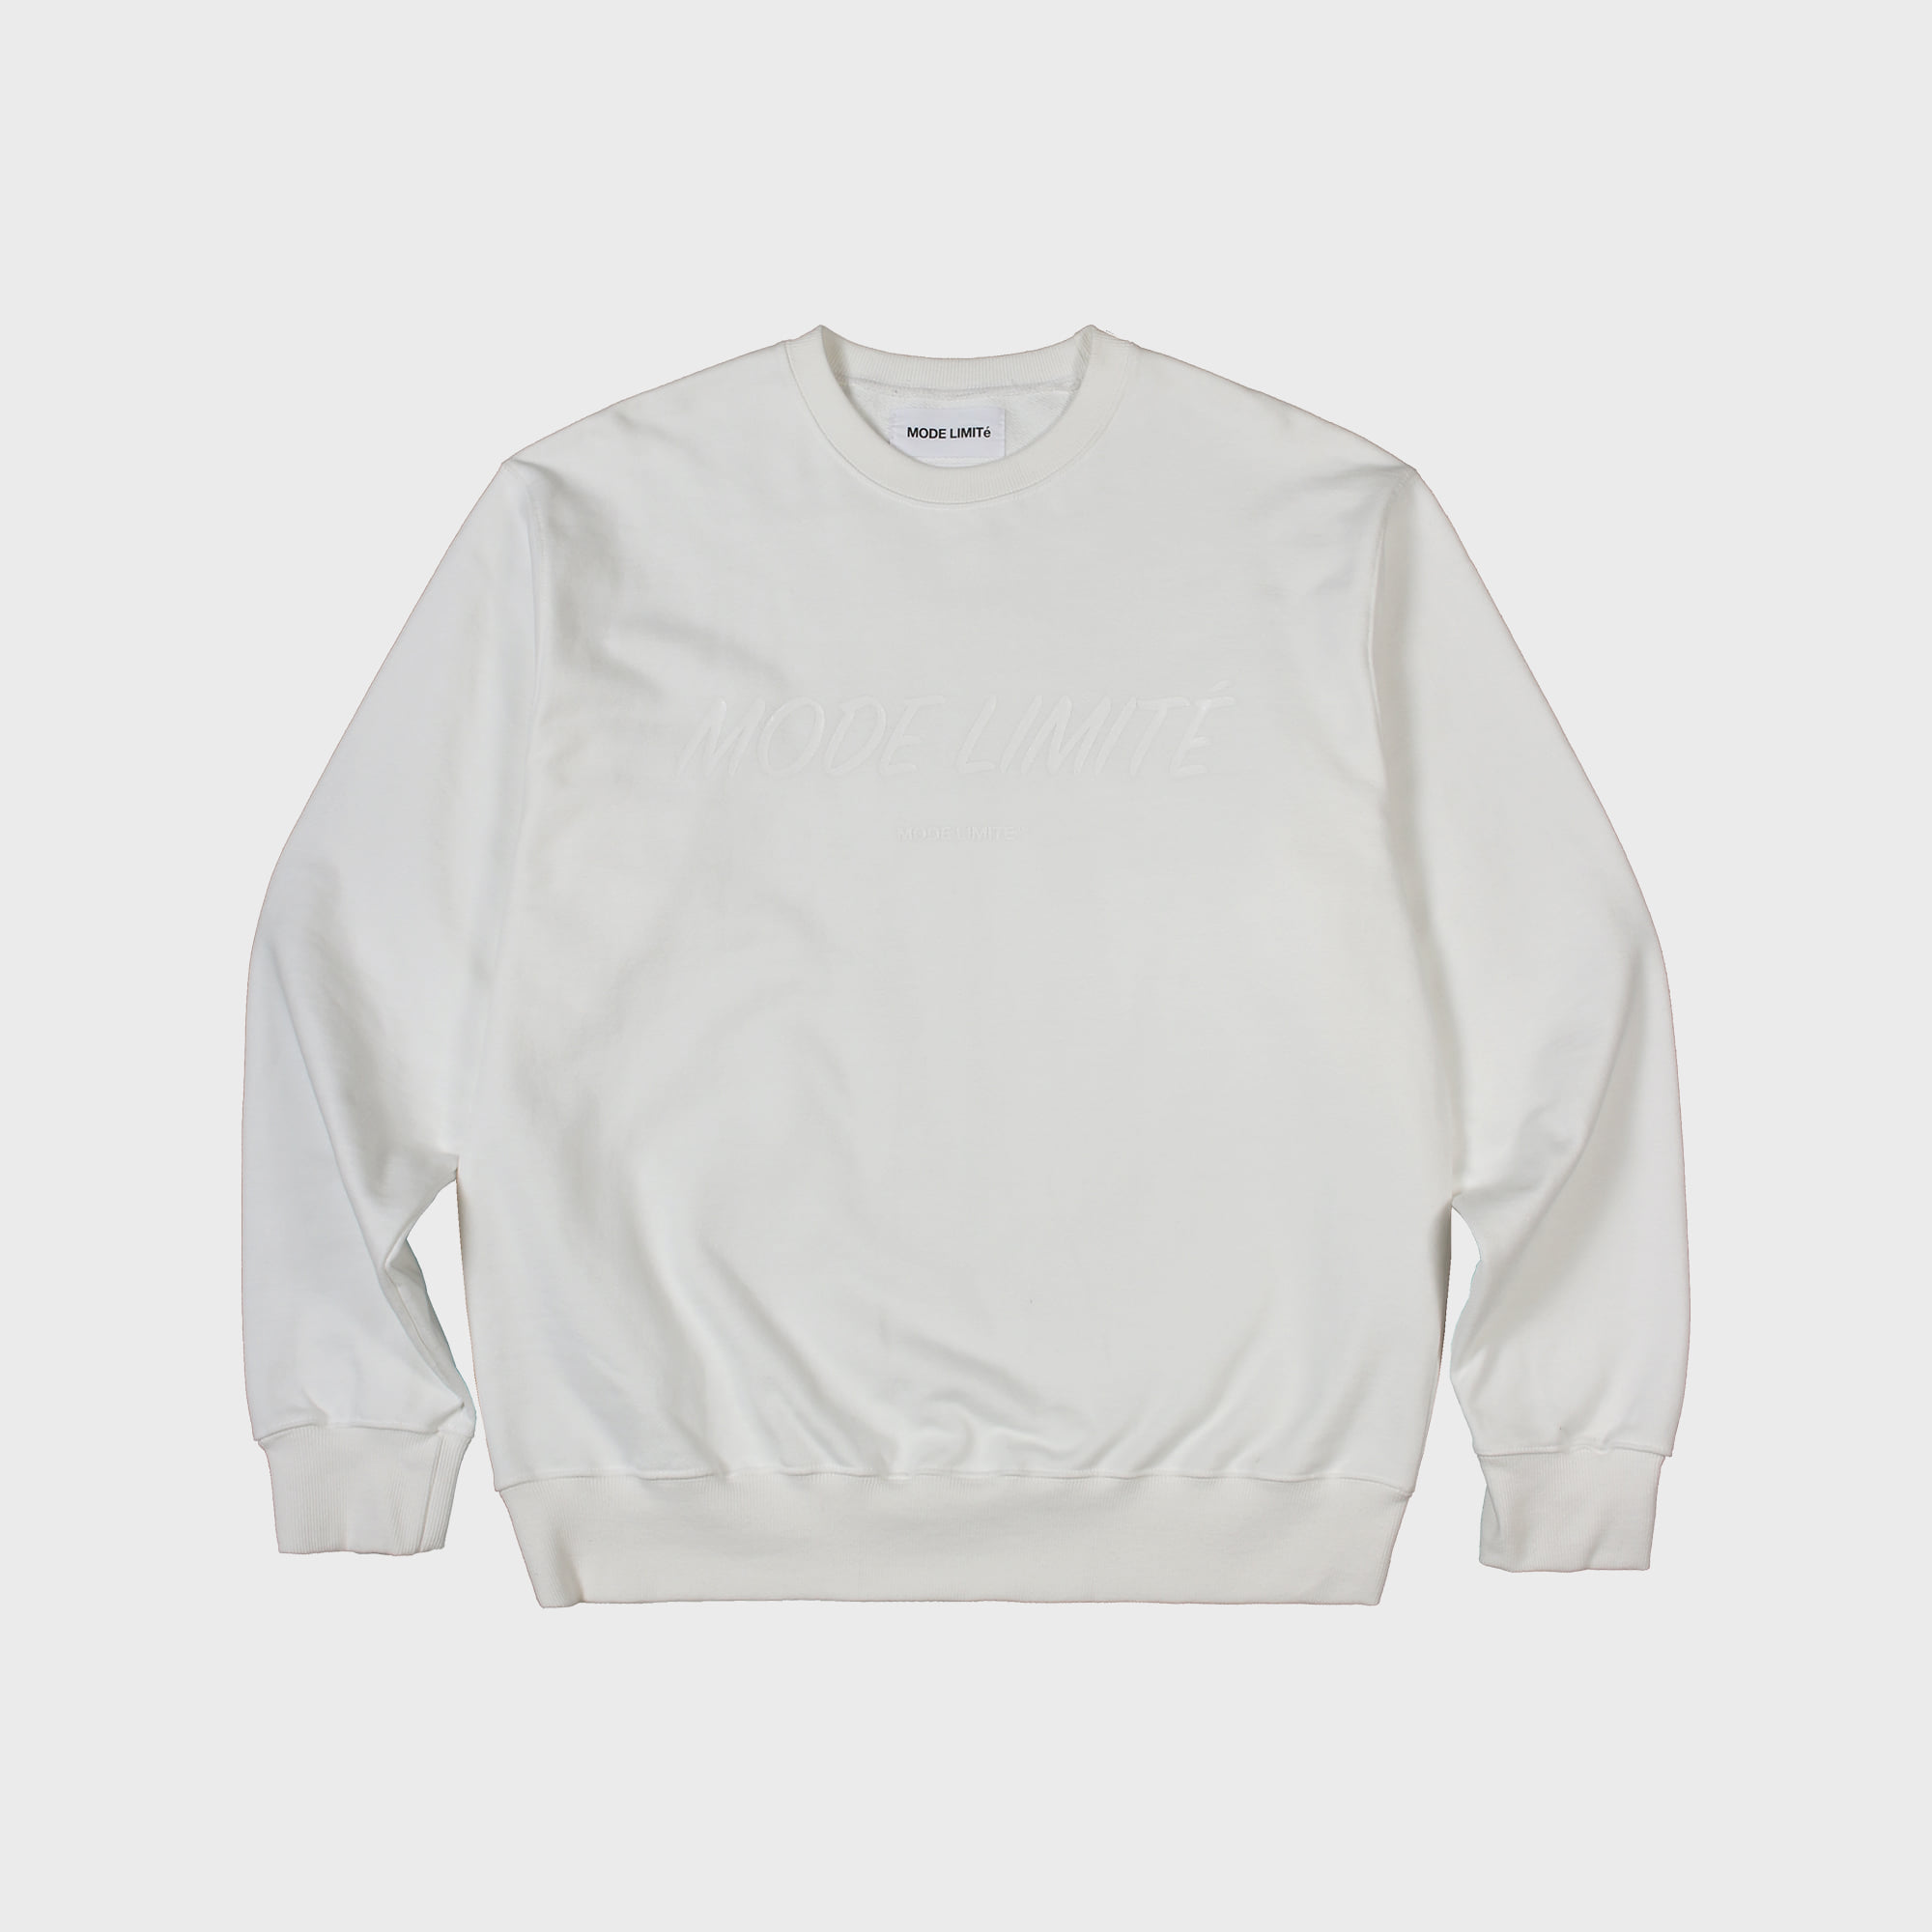 Mode Limite Sweatshirt White